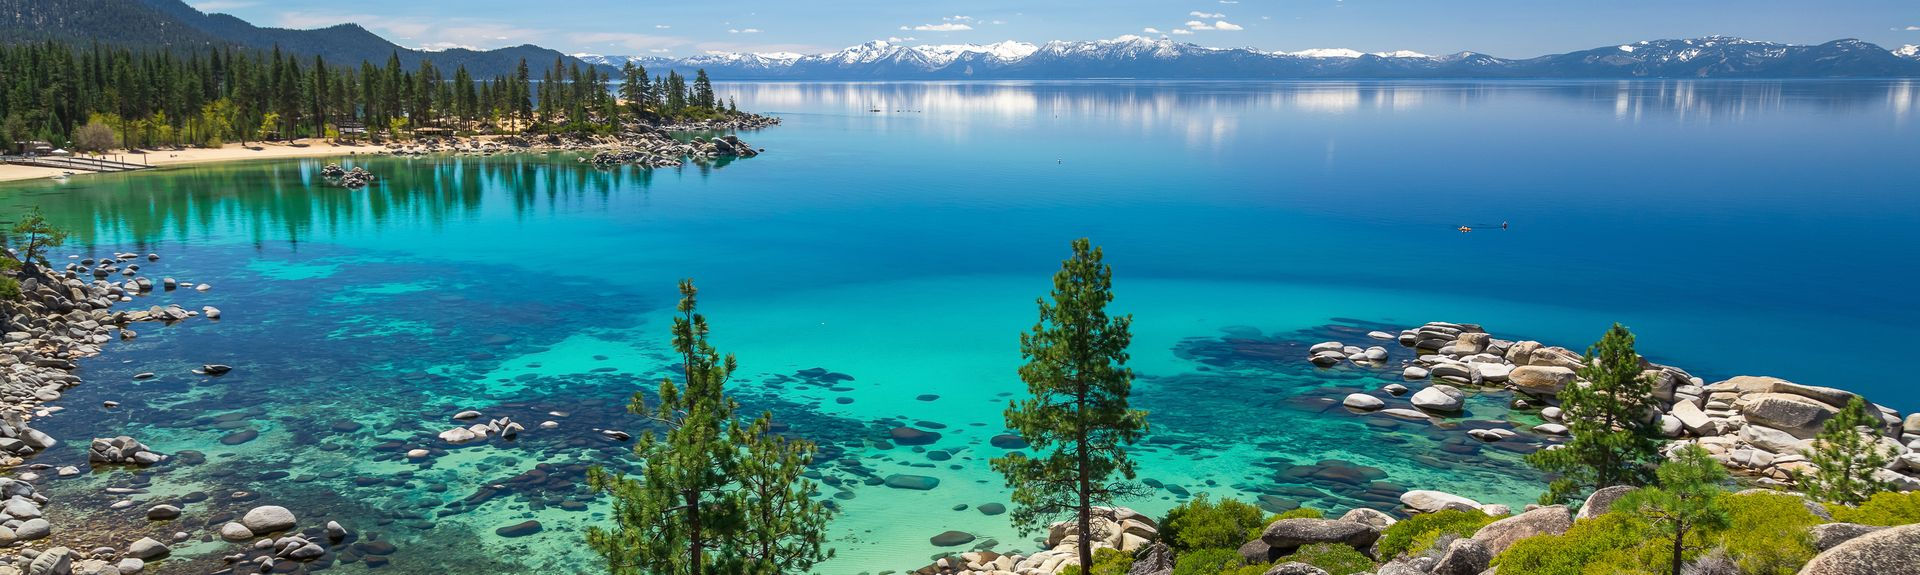 Lake Forest, Tahoe City, California, USA